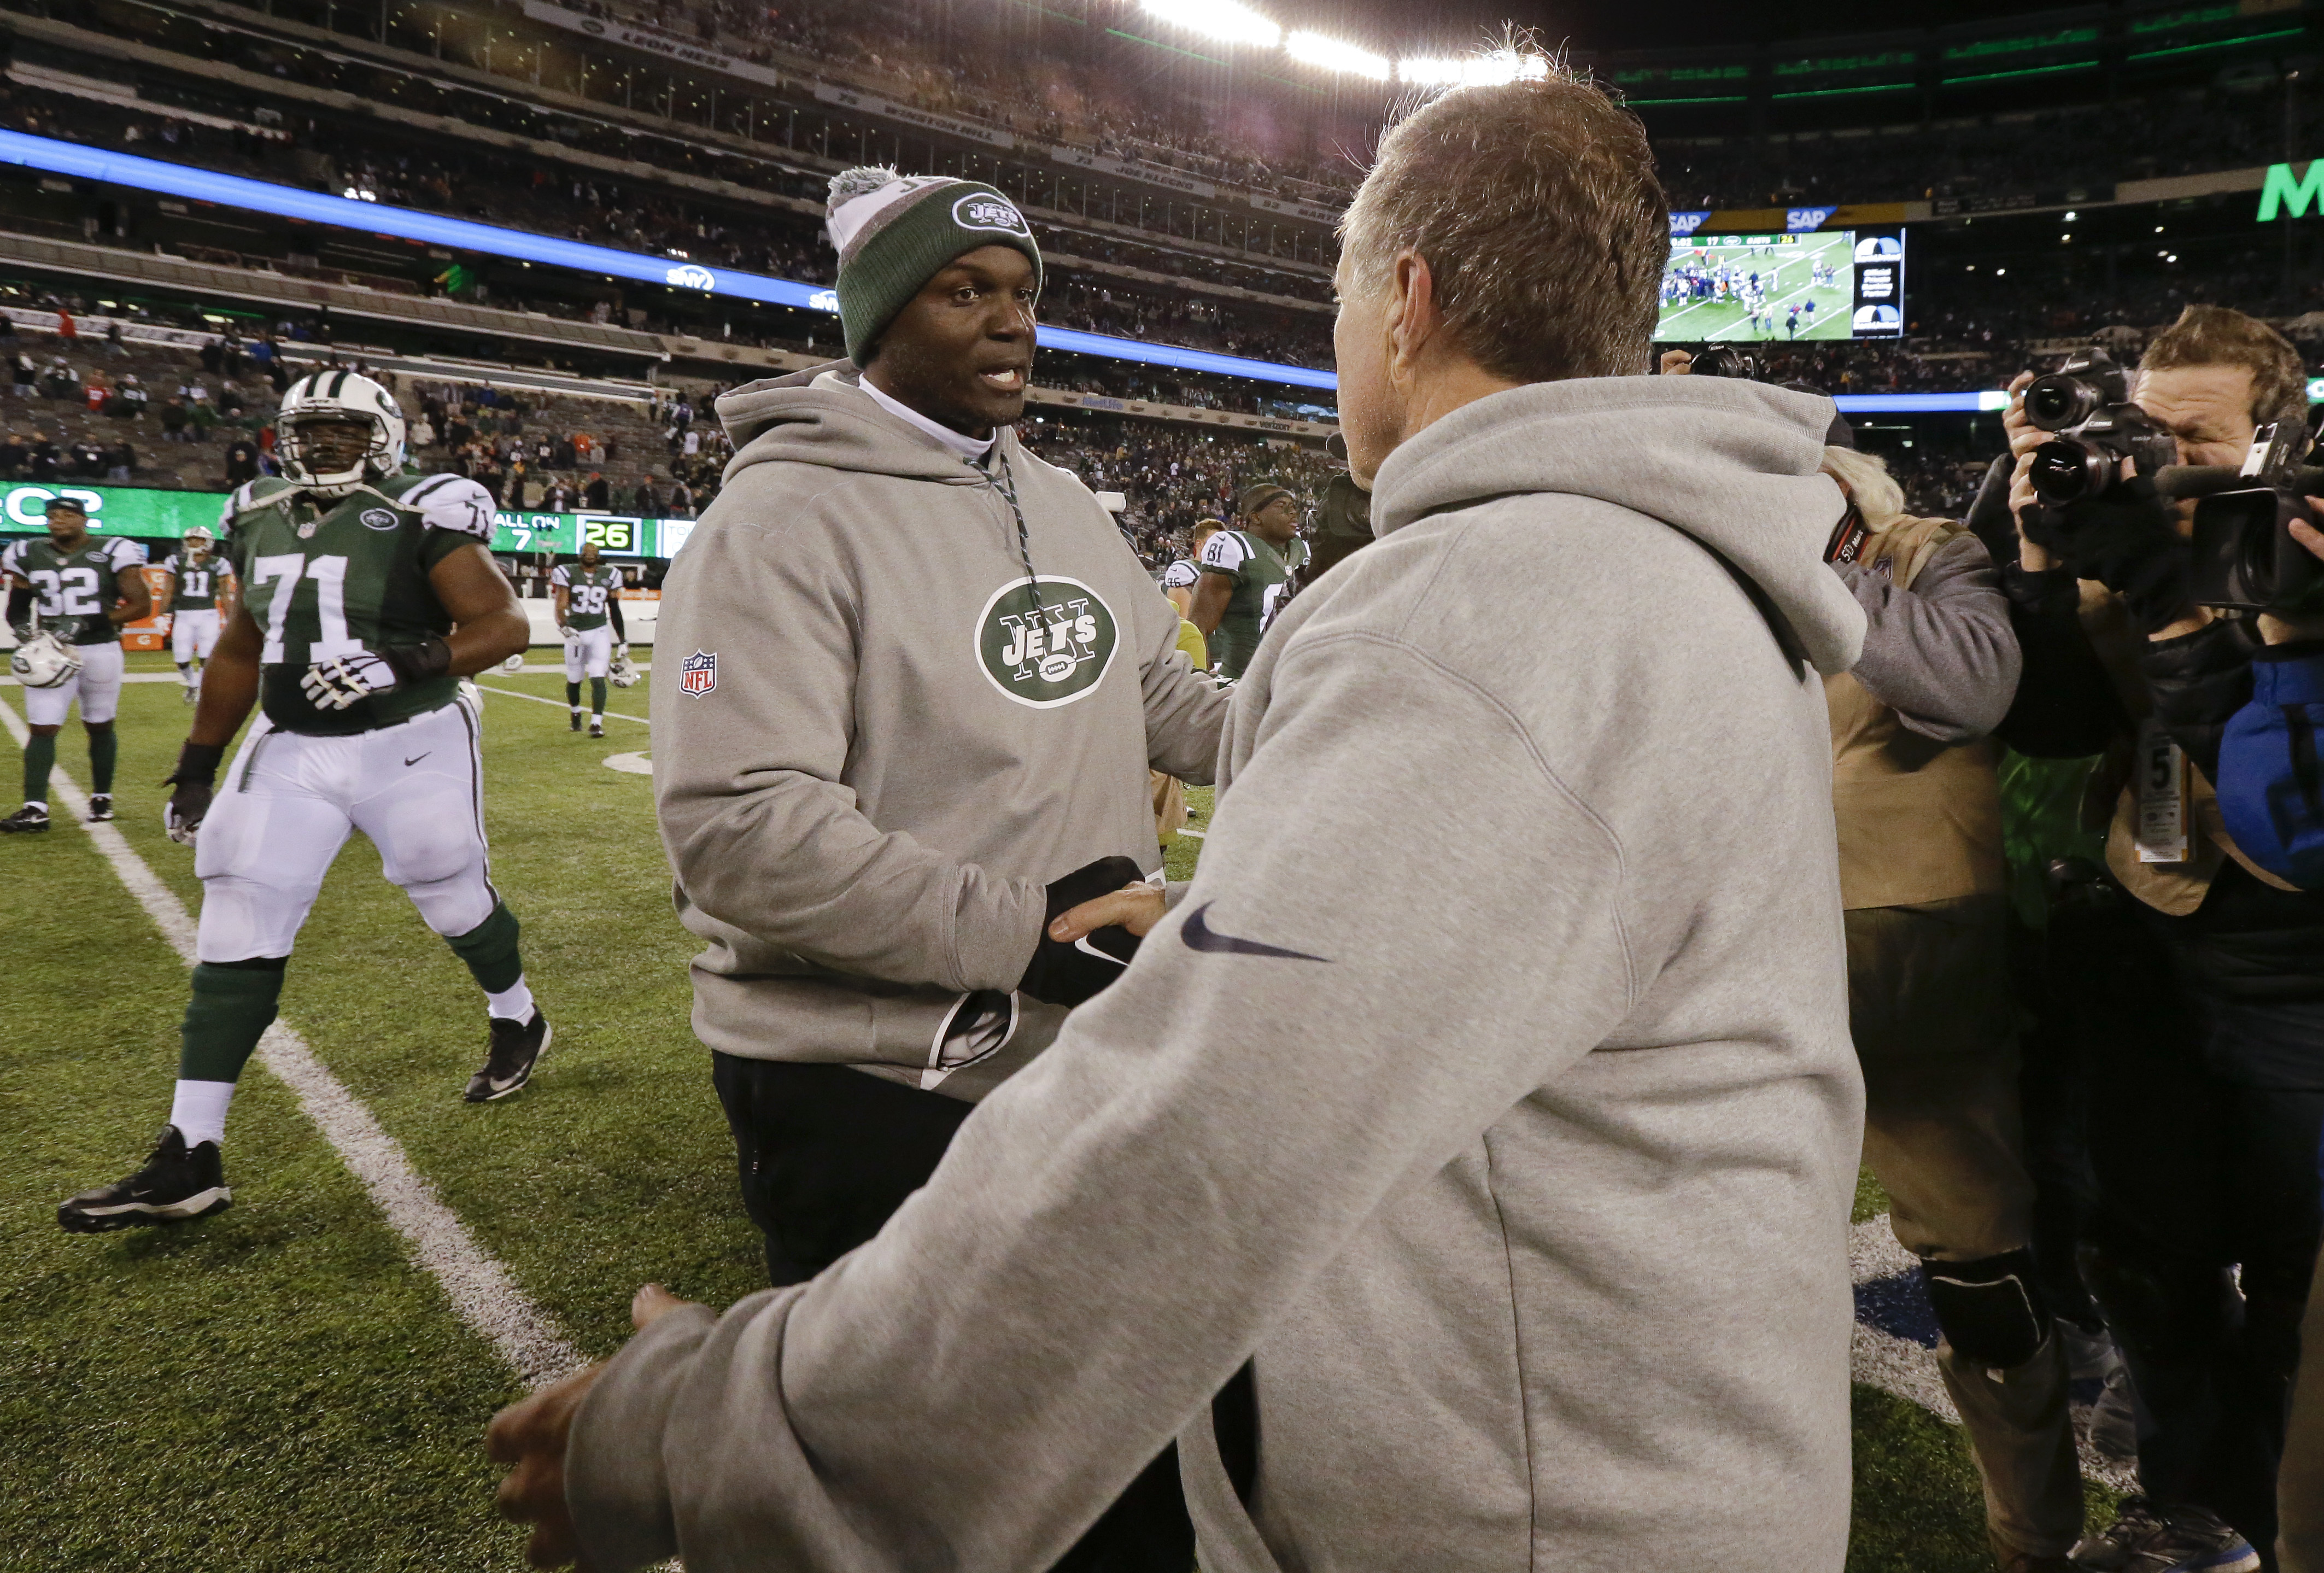 New York Jets head coach Todd Bowles, left, and New England Patriots head coach Bill Belichick meet at midfield after an NFL football game, Sunday, Nov. 27, 2016, in East Rutherford, N.J. The Patriots won 22-17. (AP Photo/Julio Cortez)